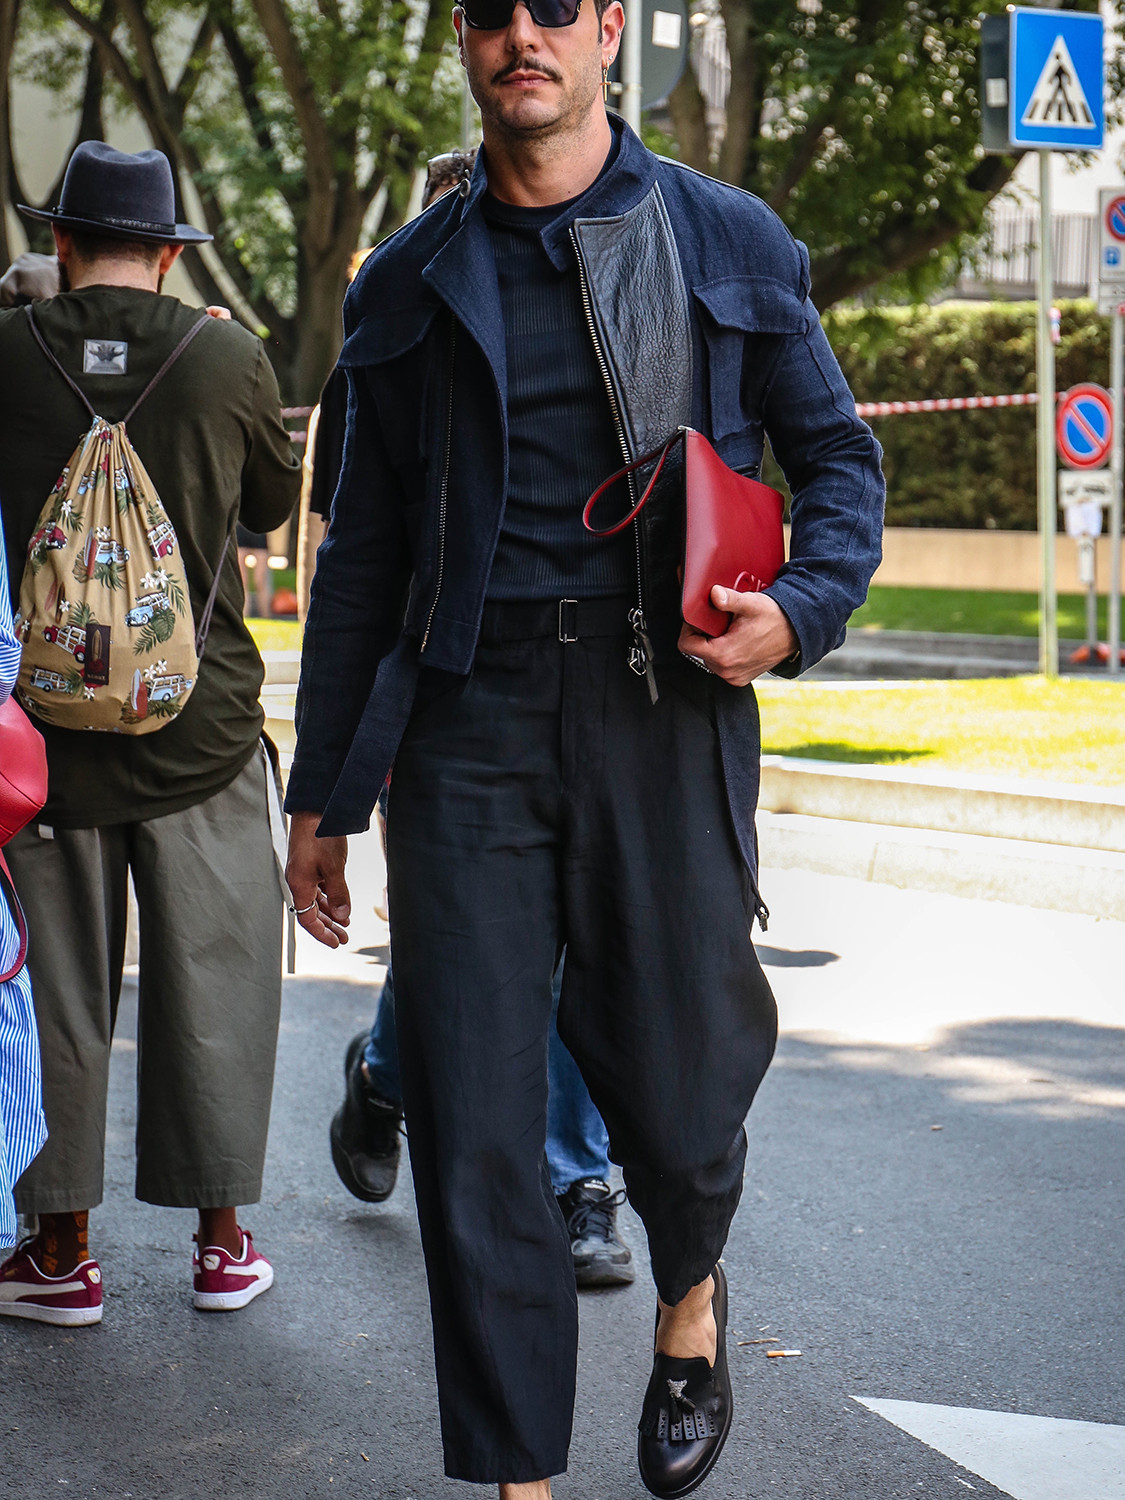 Men's outfit idea for 2021 with navy bomber jacket, navy plain long-sleeved t-shirt, navy linen trousers, black thick framed sunglasses, black loafers. Suitable for spring, summer and autumn.